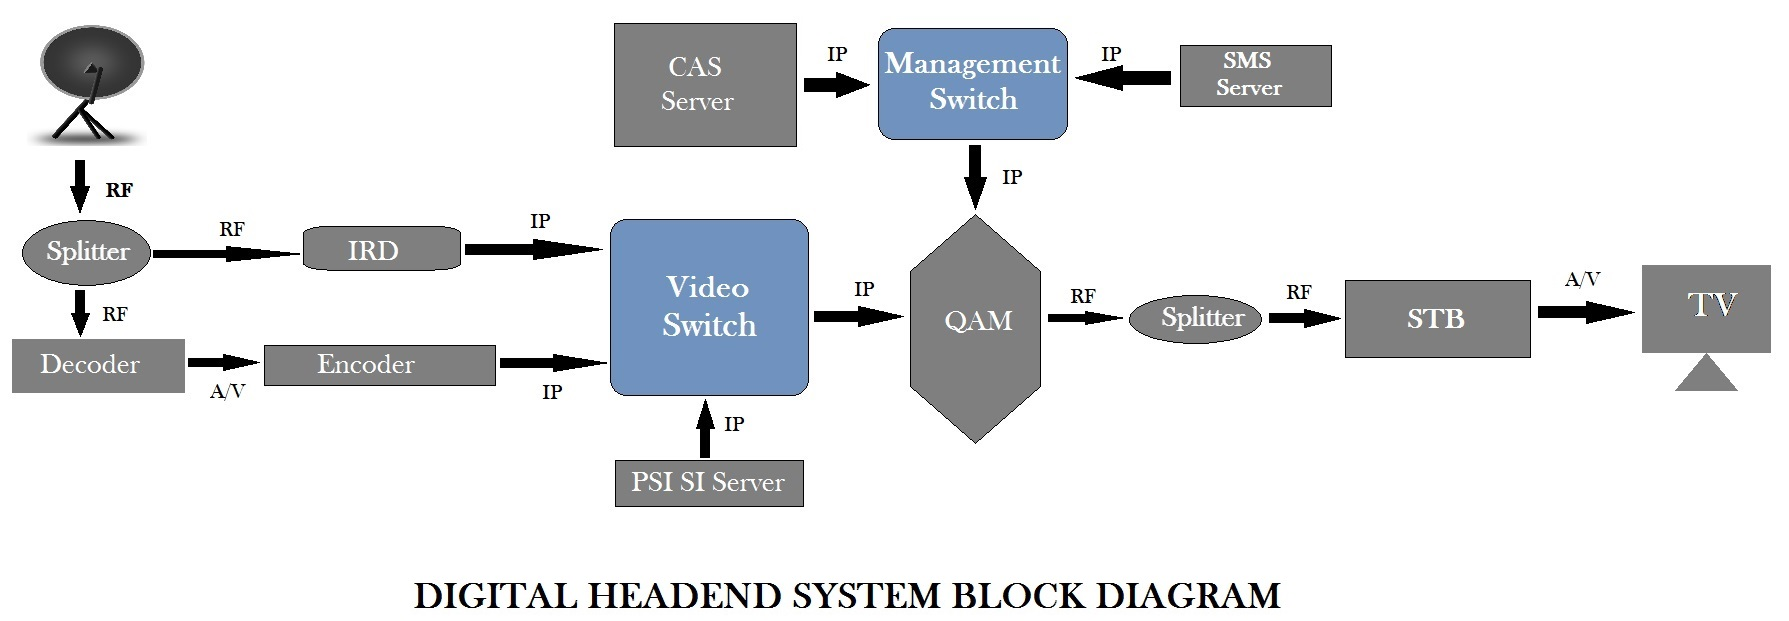 pro hdx qam wiring diagram   26 wiring diagram images